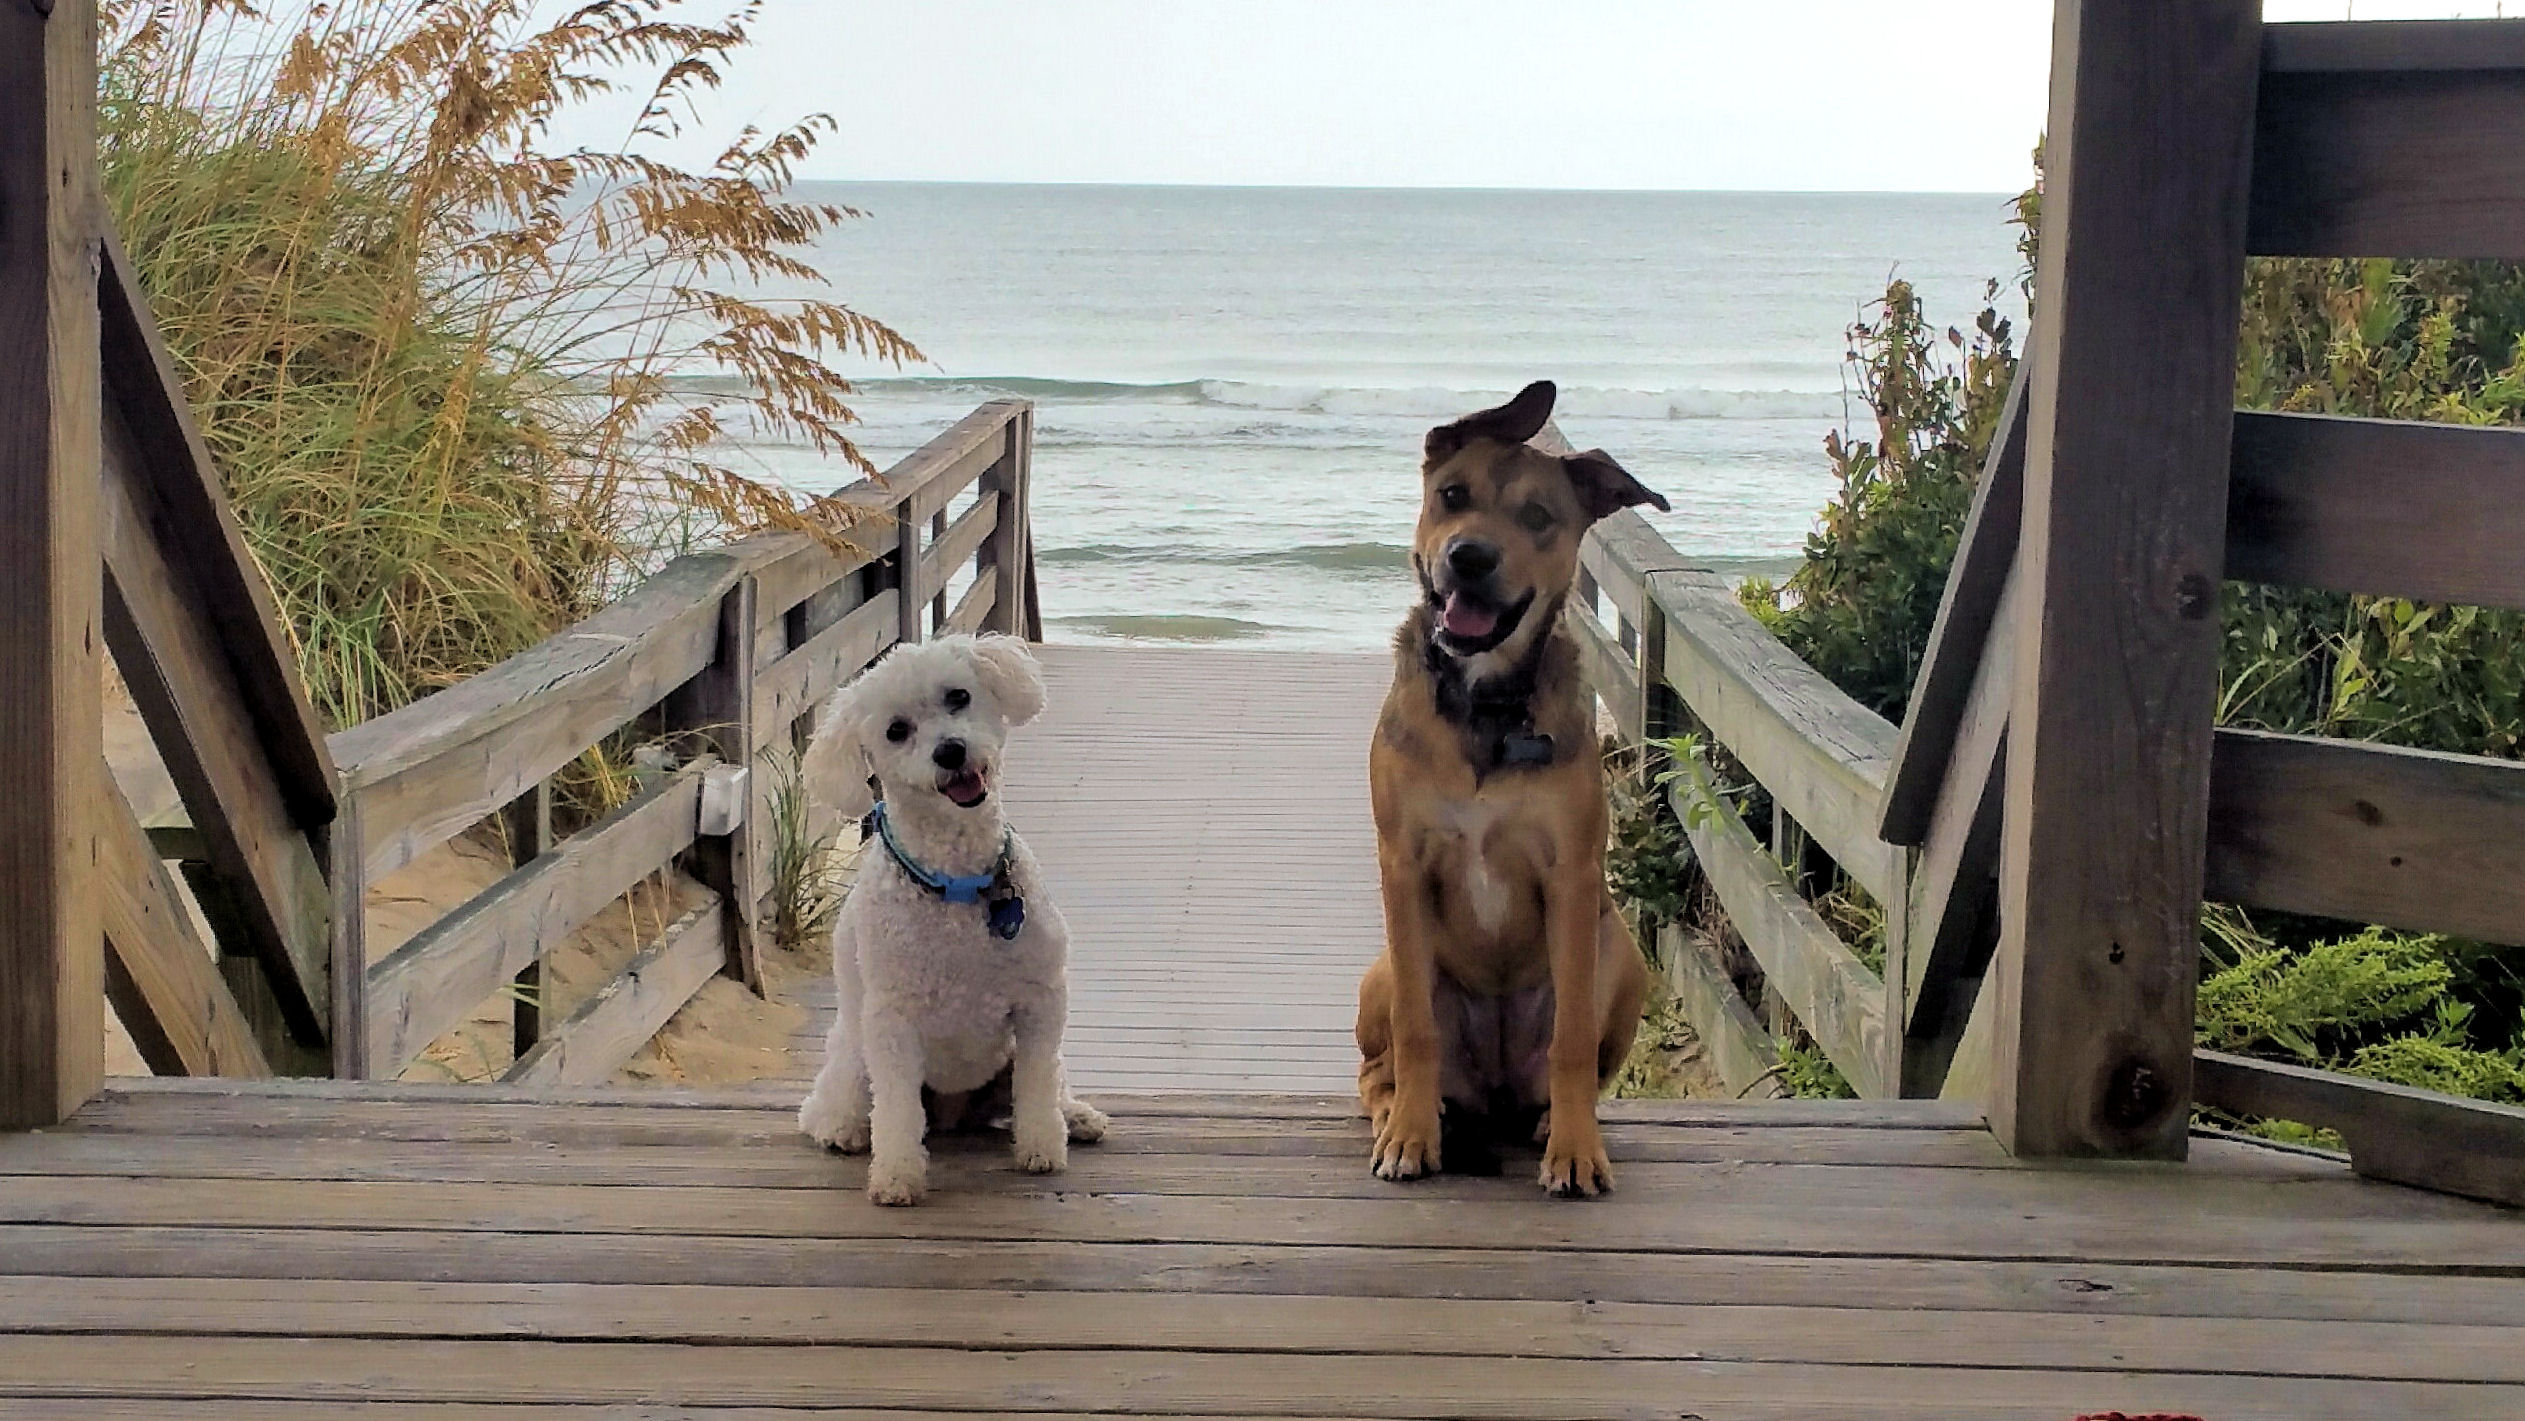 Beach dogs on walkway